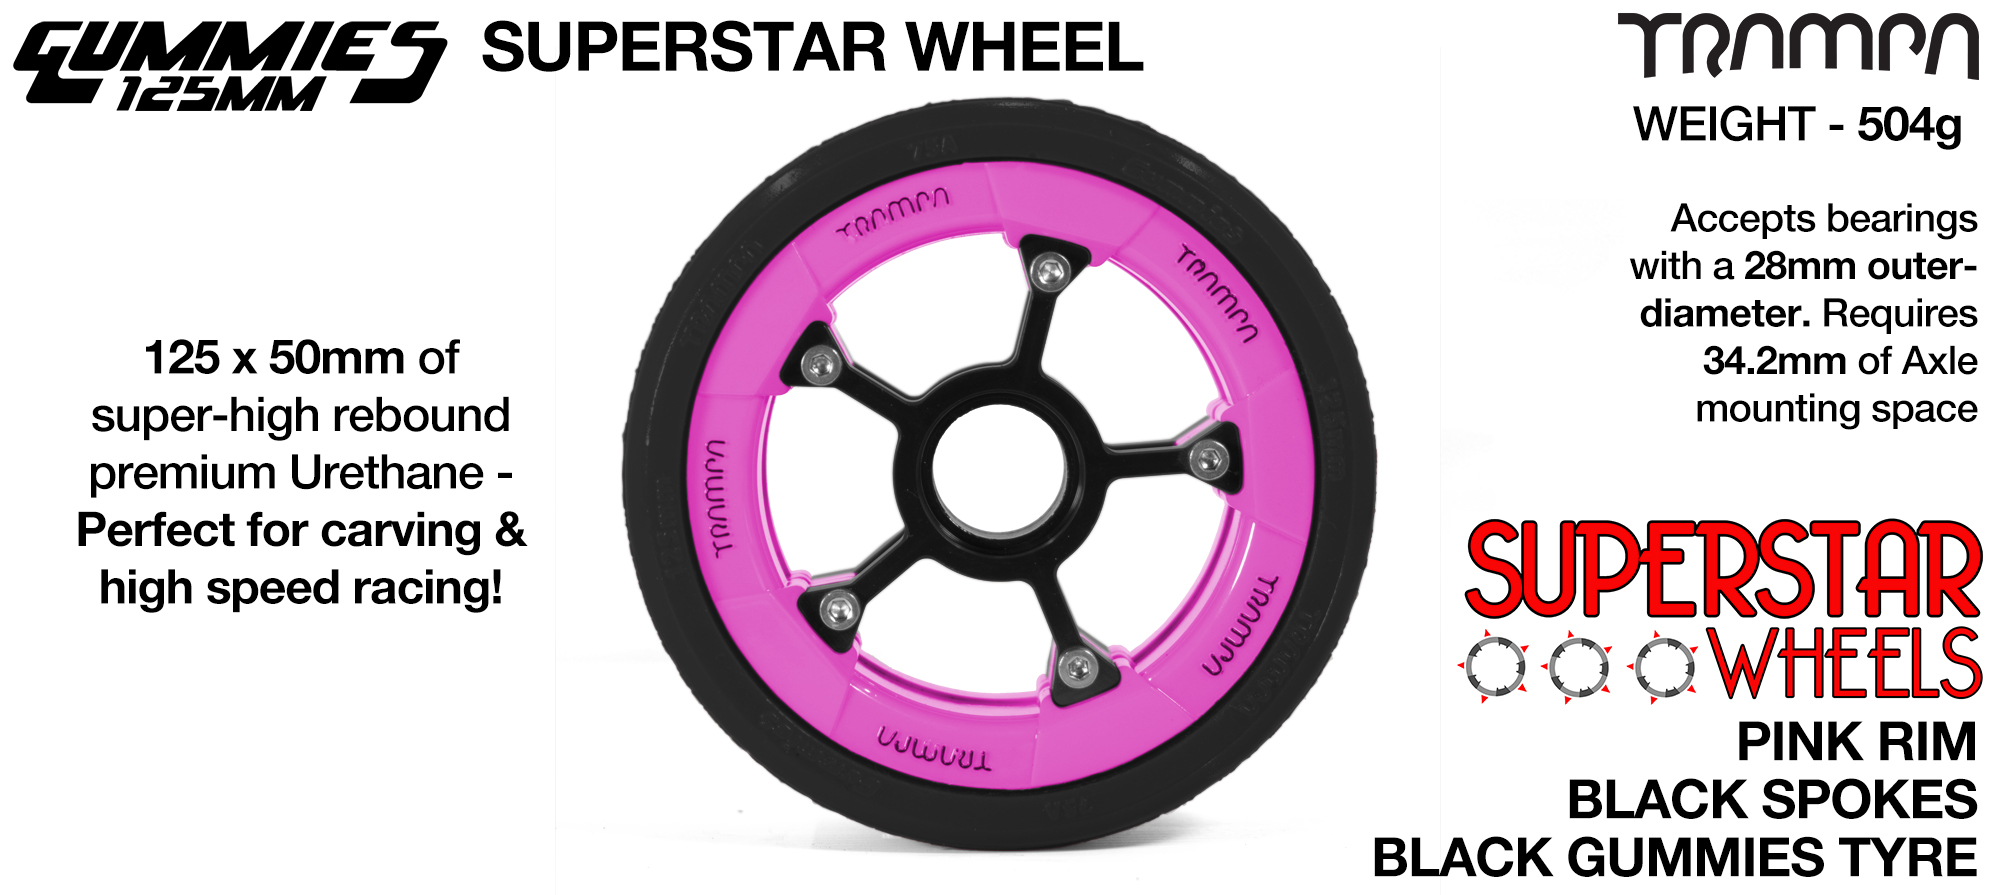 Superstar 125mm Longboard Wheels - CARBON print Superstar Rim with BLUE Spokes & BLACK Gummies 125mm Longboard Wheel Tyre